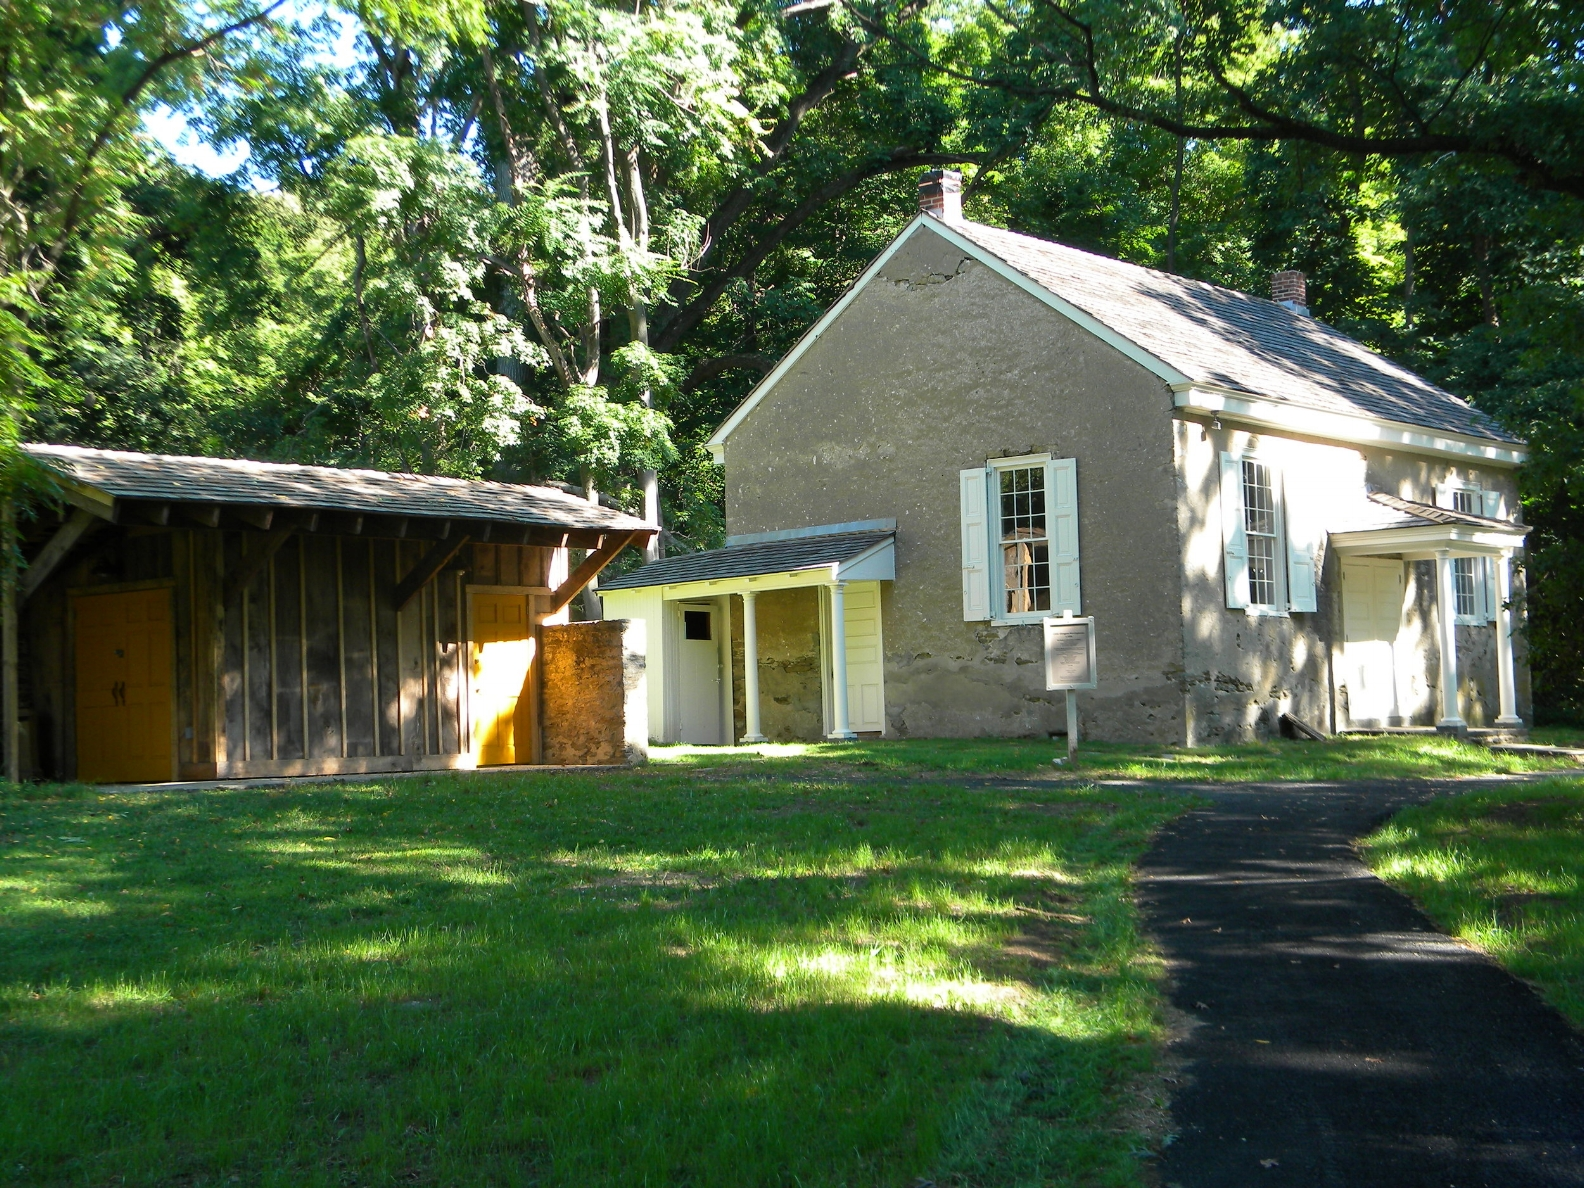 Meetinghouse Reclaimed Wood Outbuilding with Renovated Stone Building 2.jpg